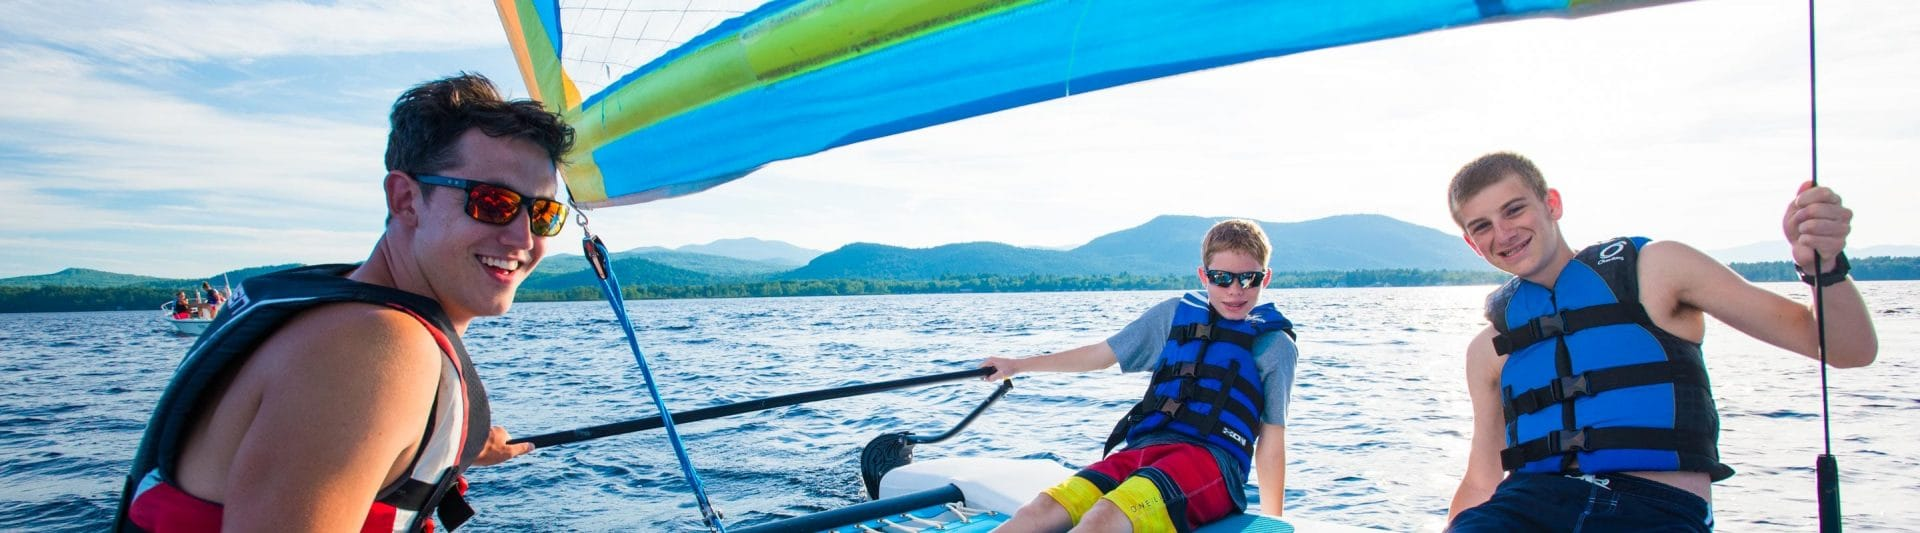 three boys relaxing on a sailboat